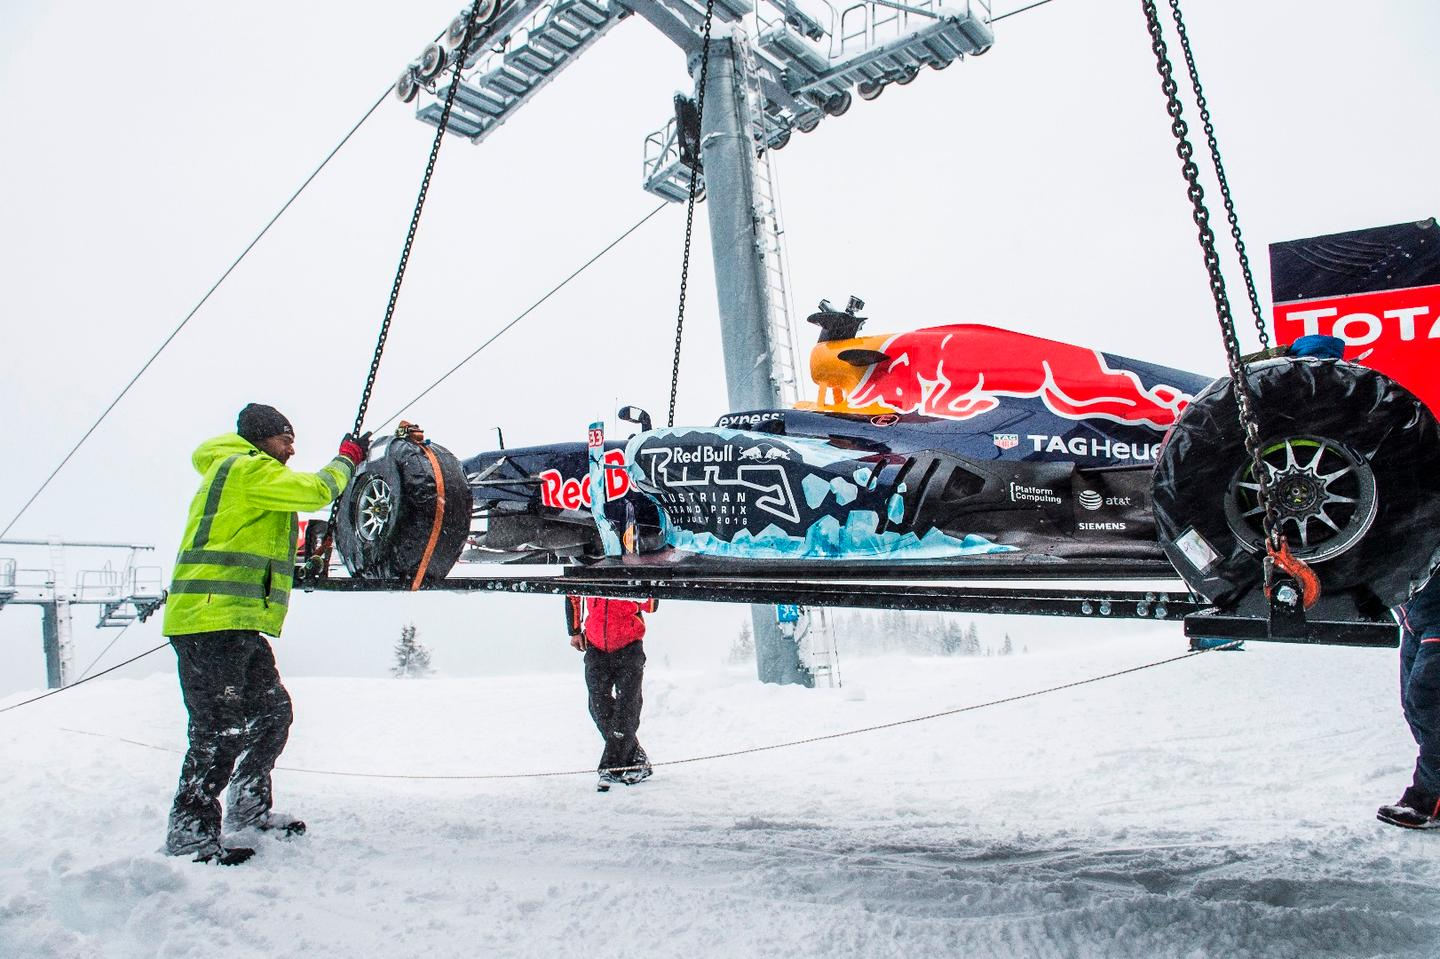 Quite the feat through and through, the F1 slope ride included a heli-lift onto the mountain